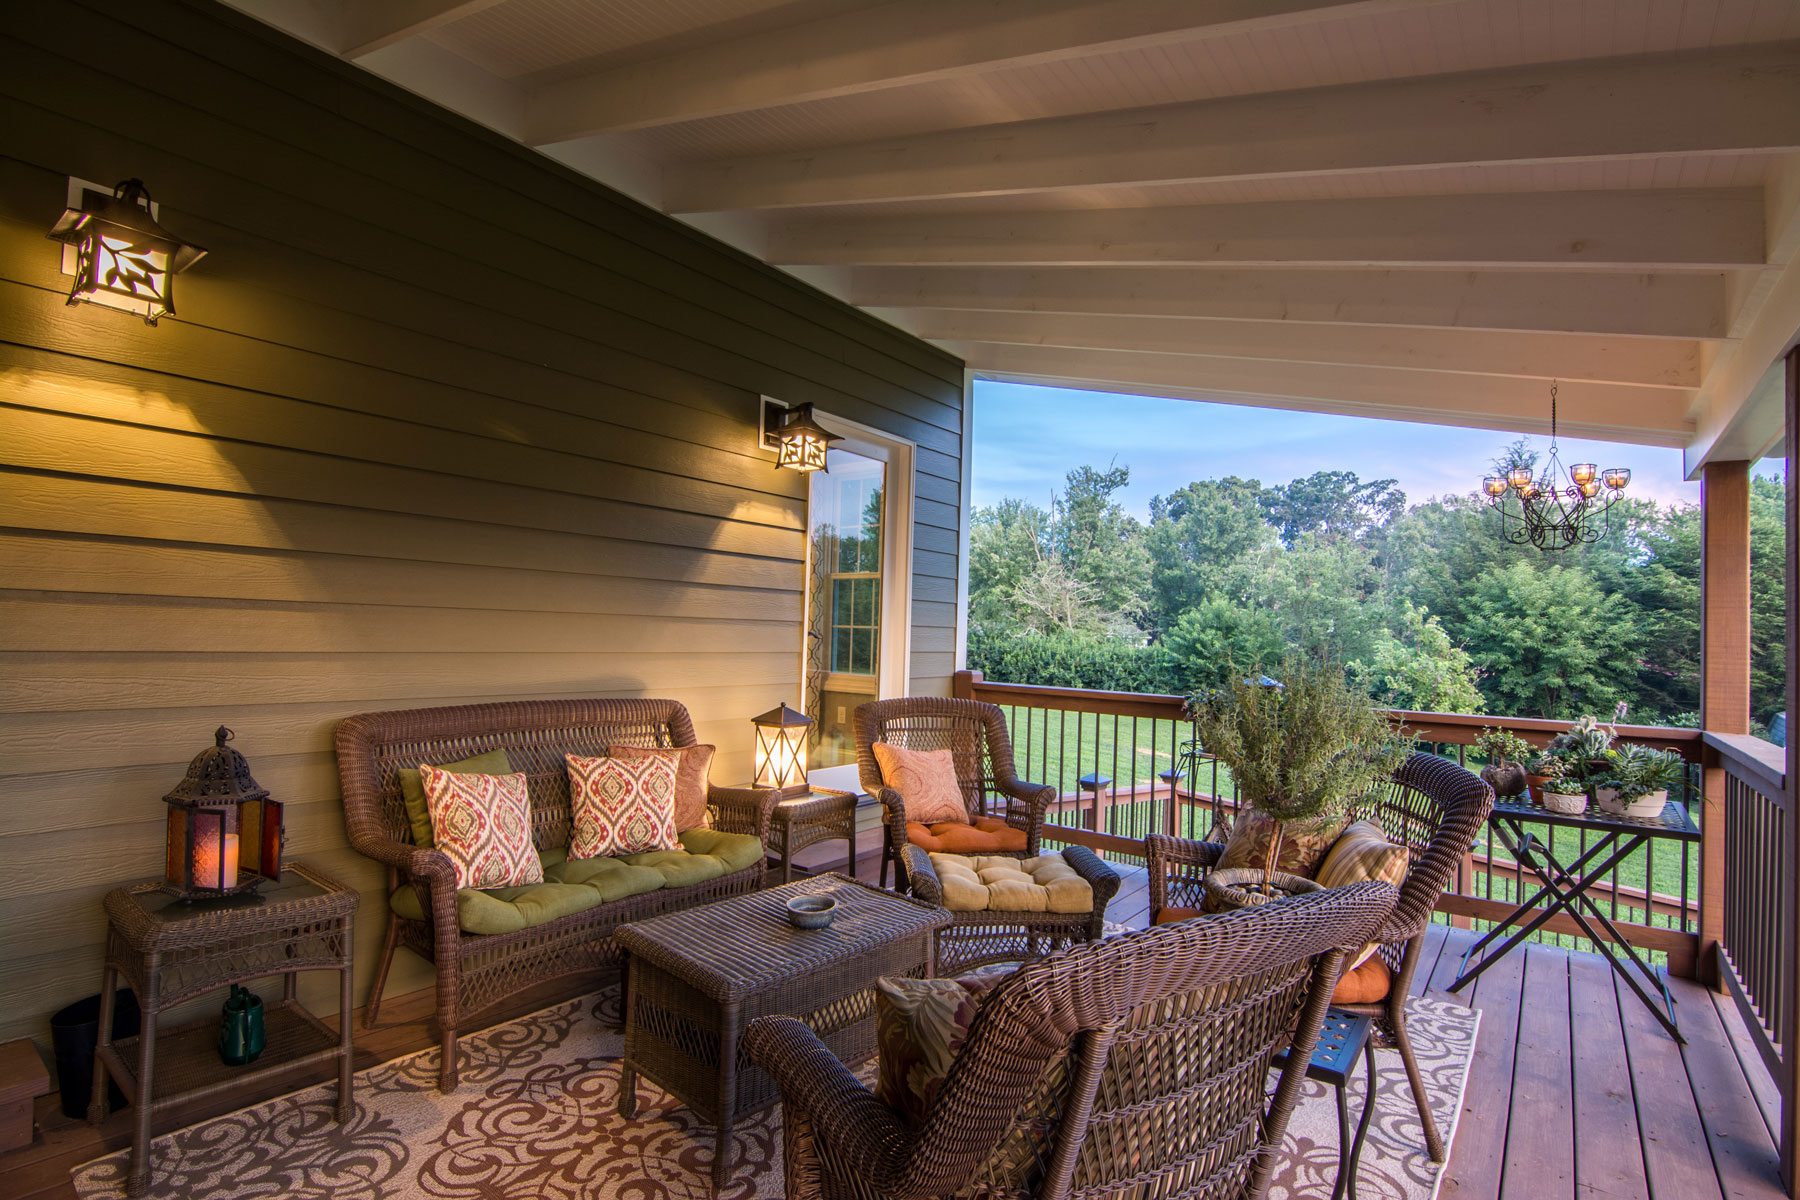 Covered porch added along with family room addition